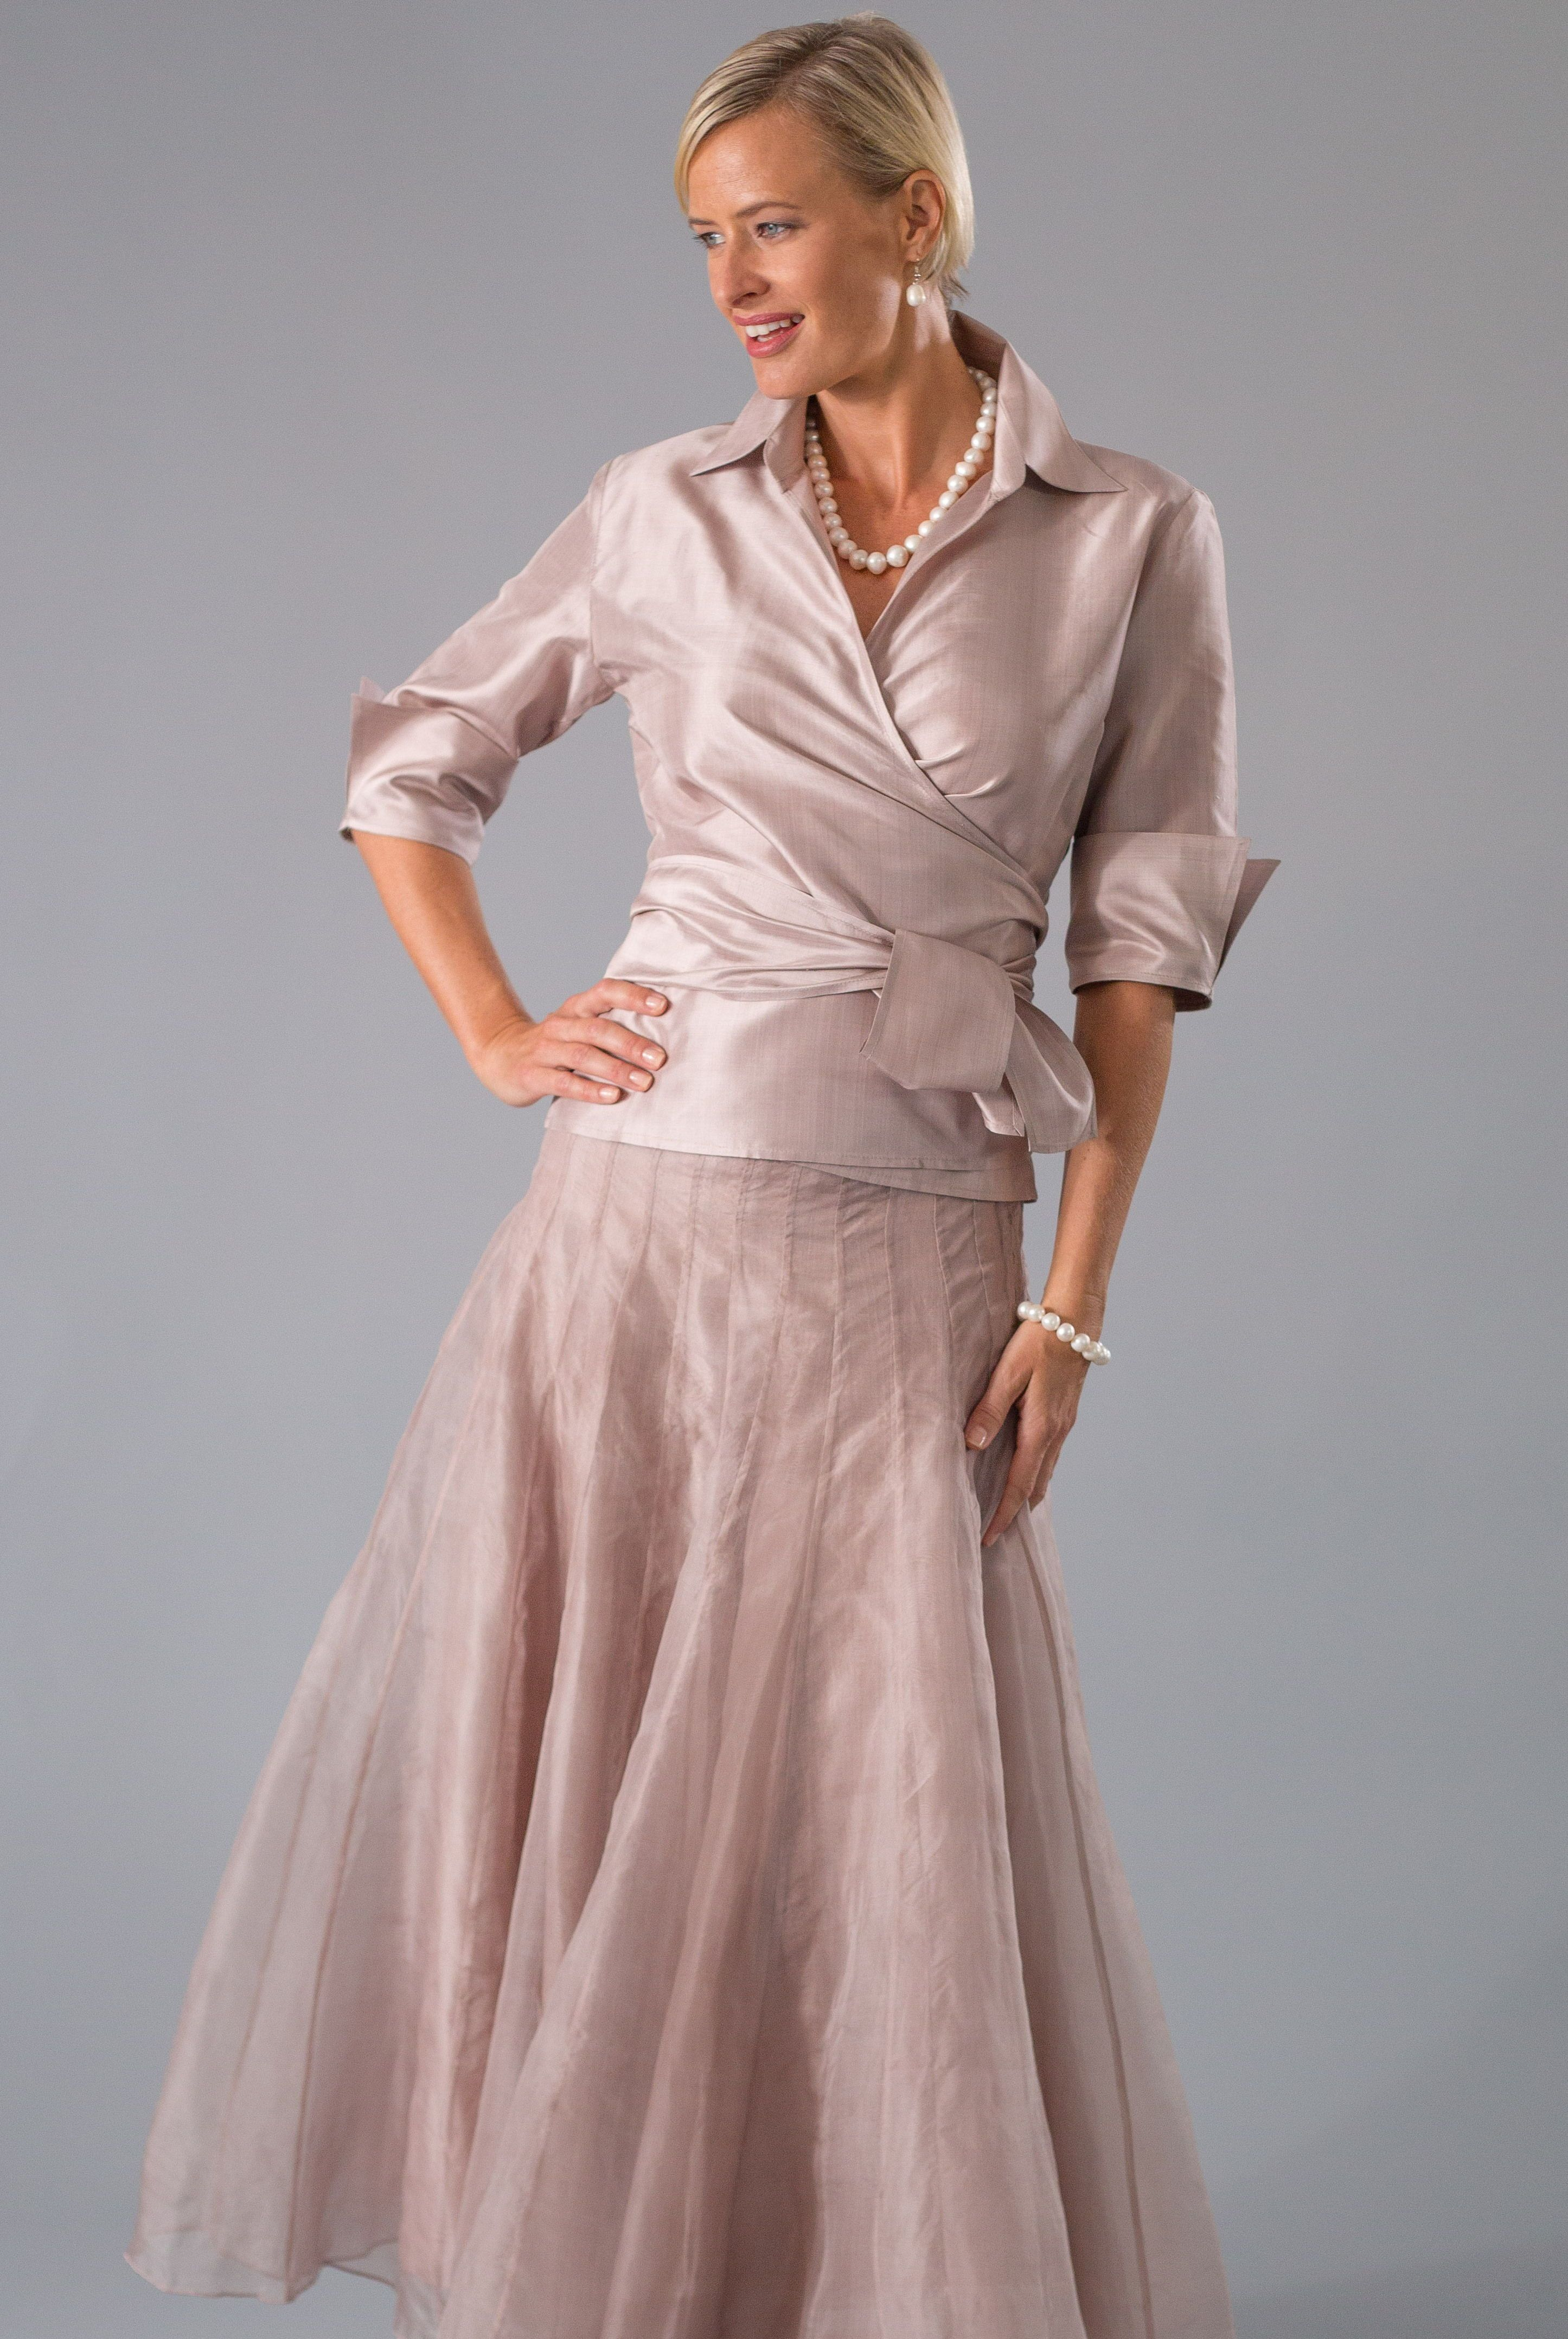 For the modern and elegant mother of the bride and mother